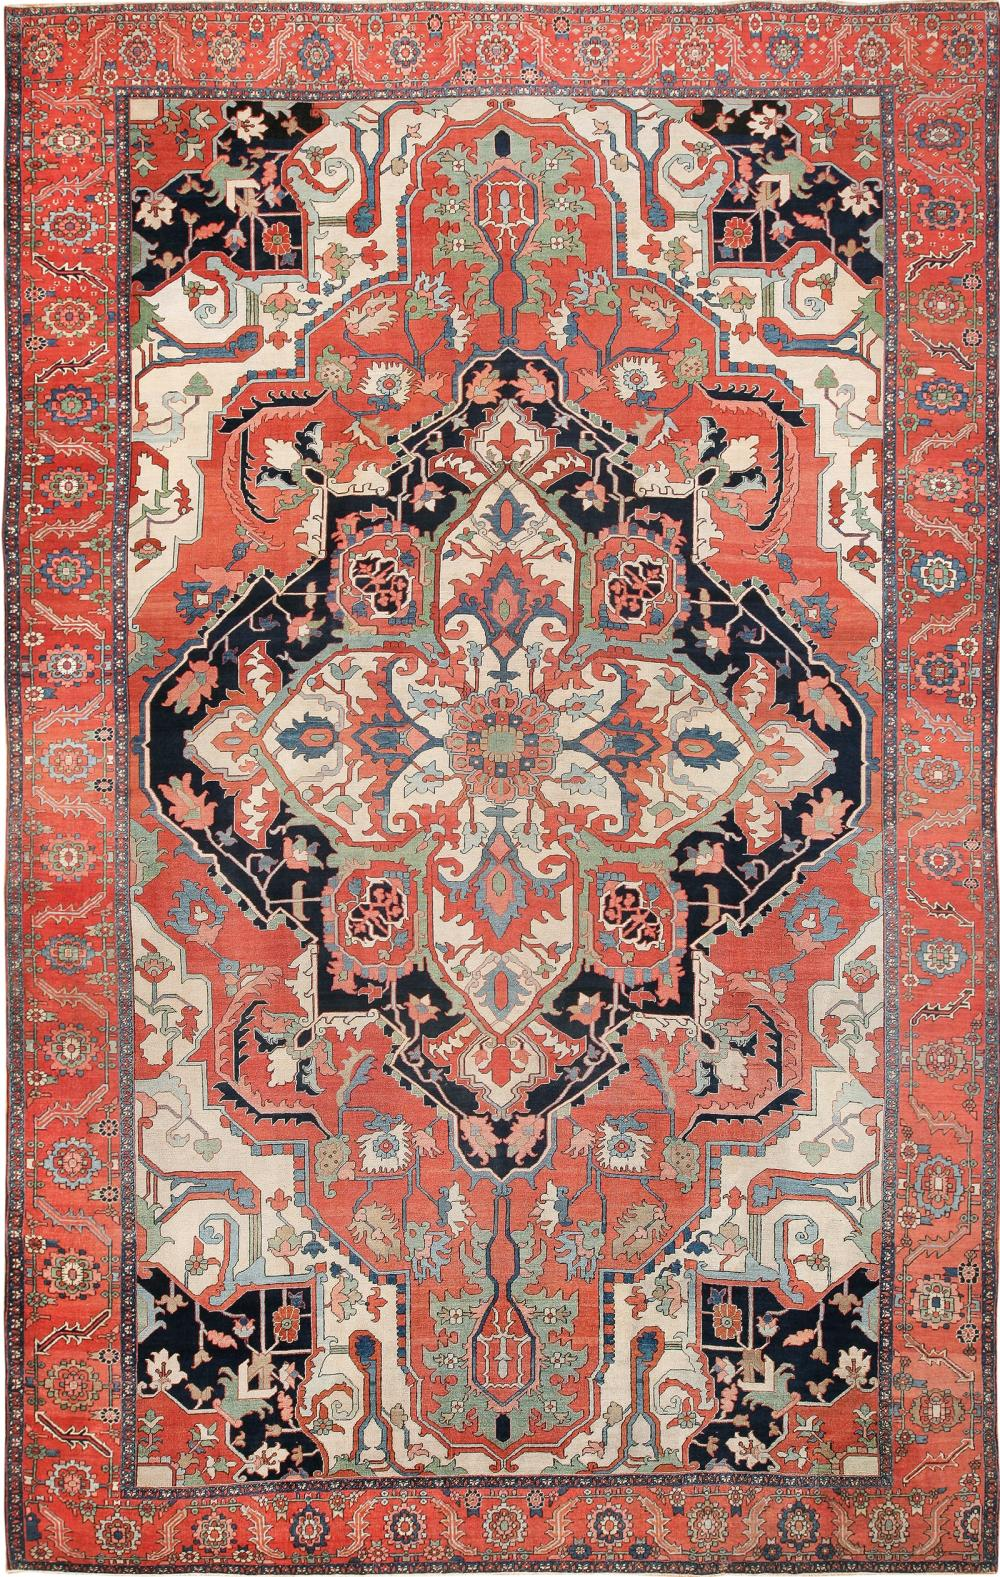 Sold Price Antique Persian Serapi Rug Size 12 X 19 3 66 M X 5 79 M June 4 0120 6 30 Pm Edt